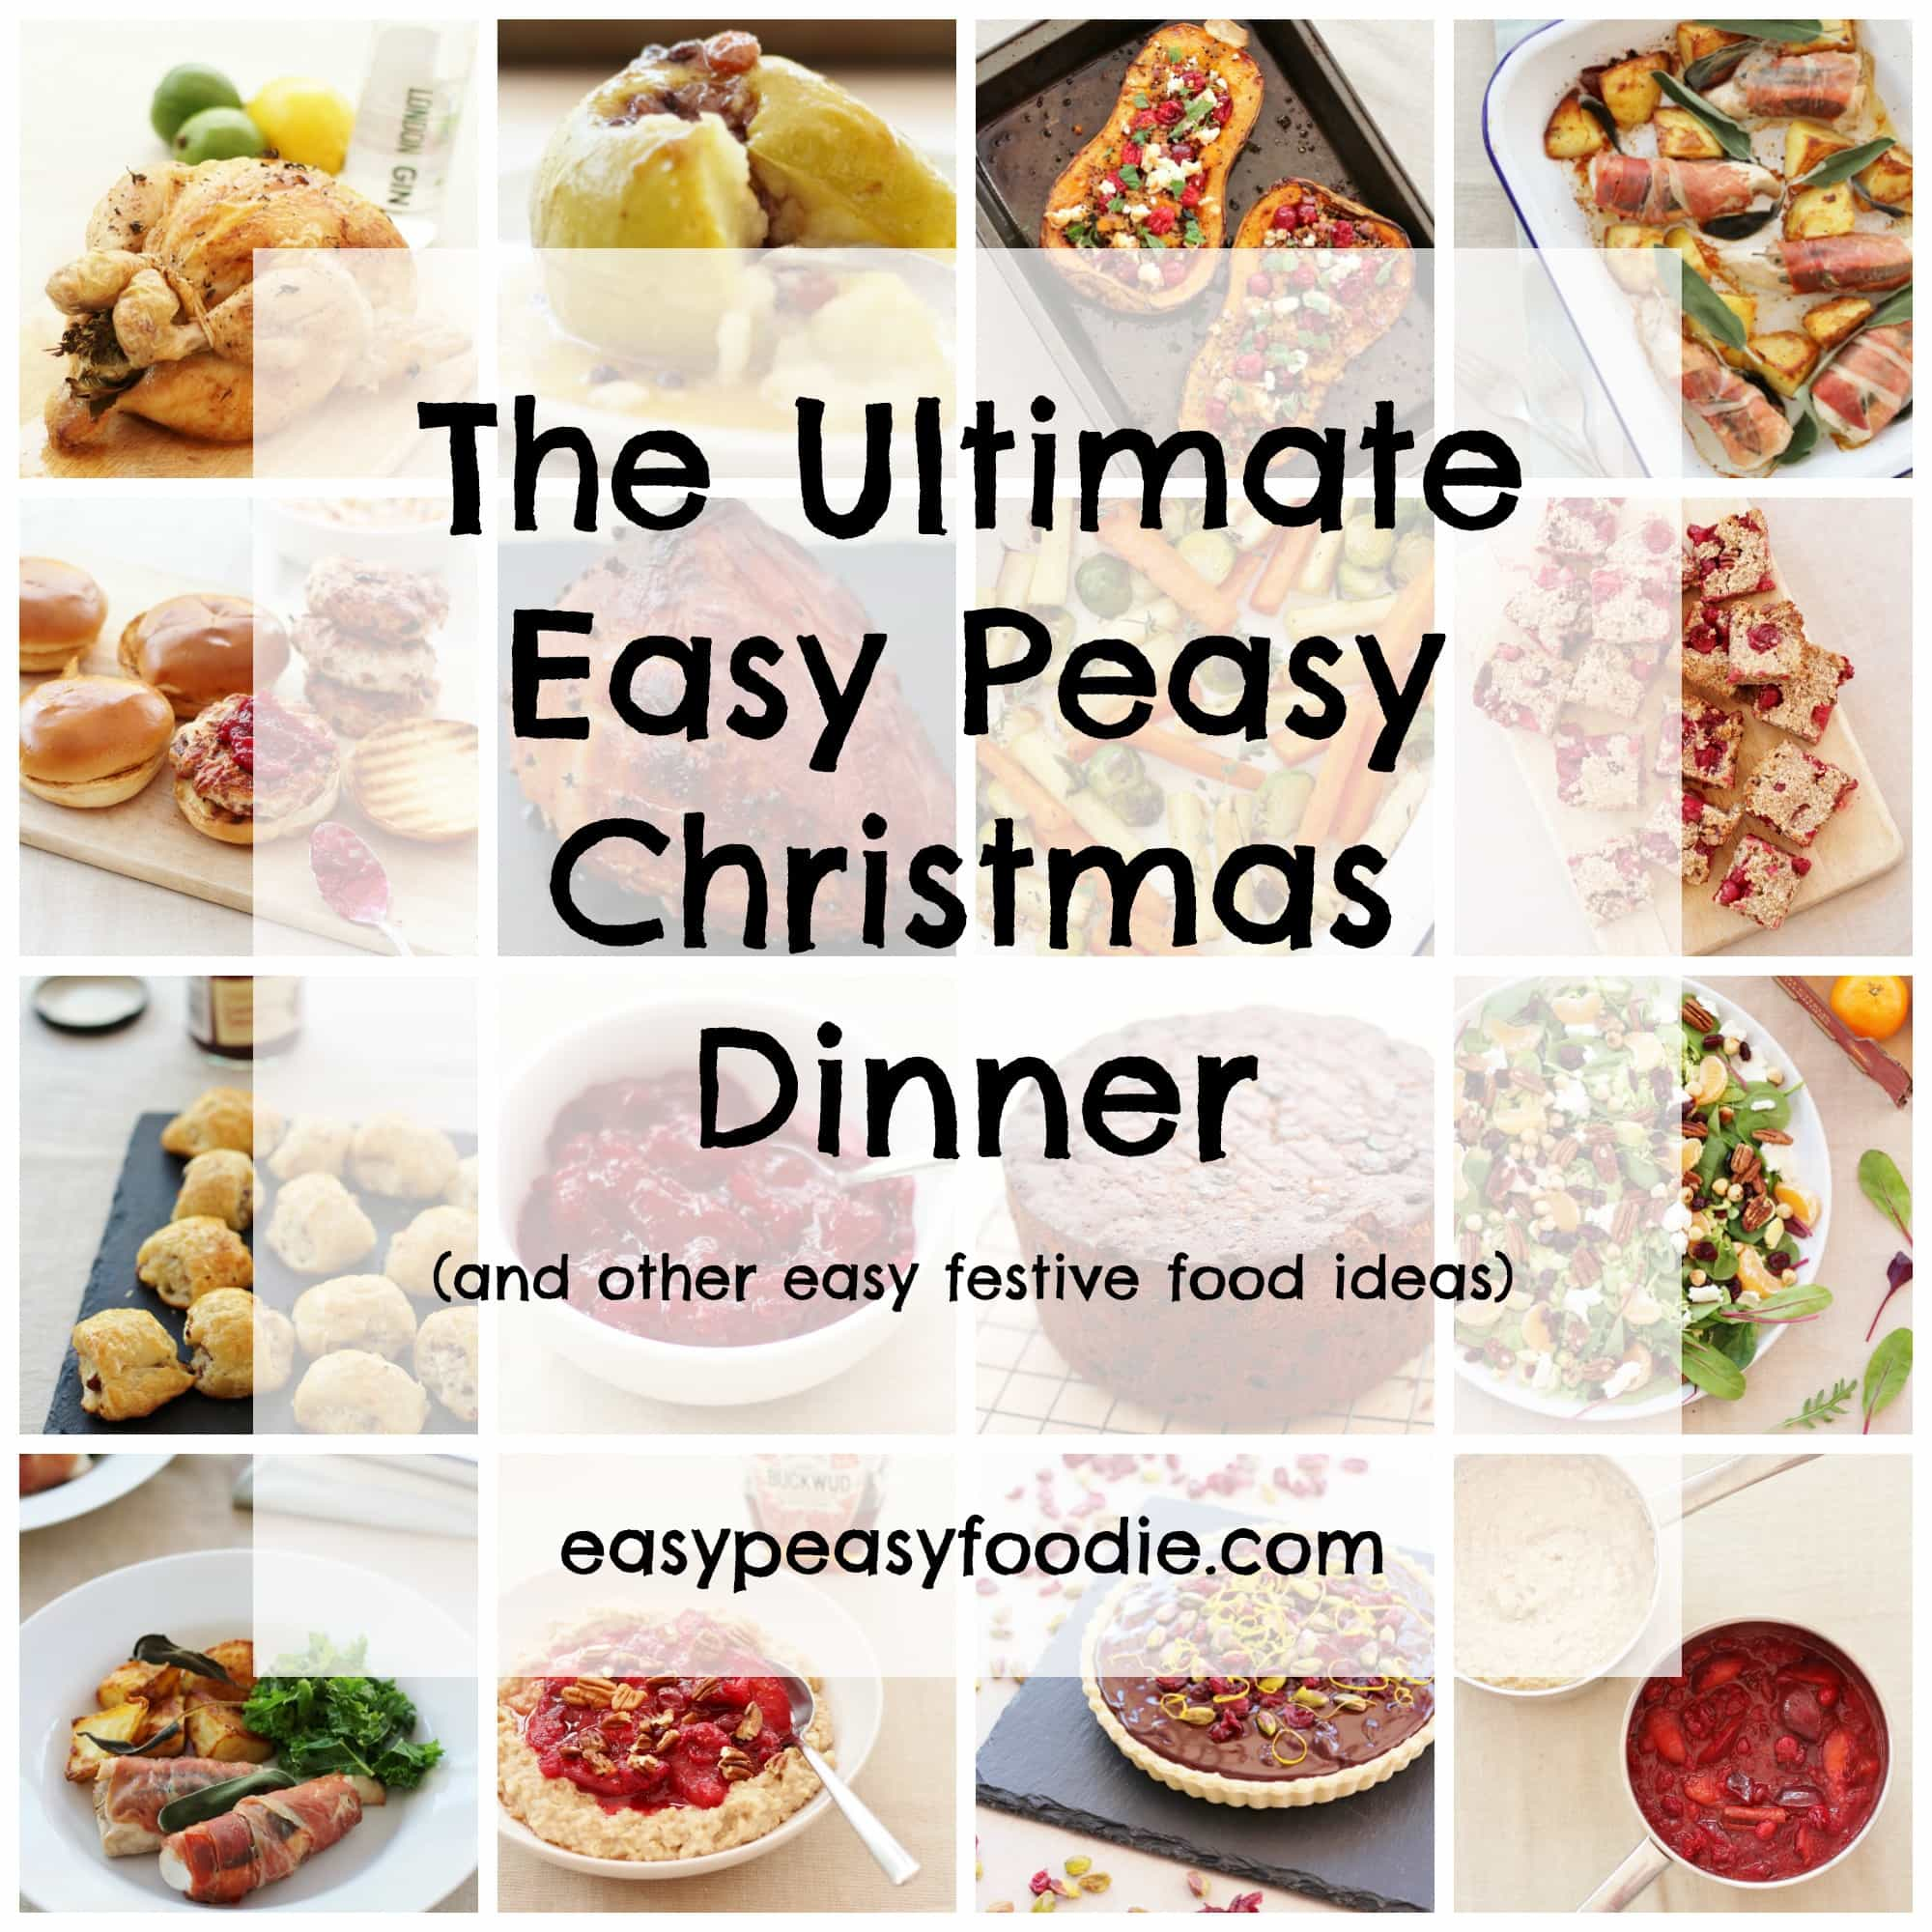 The Ultimate Easy Peasy Christmas Dinner Easy Peasy Foodie